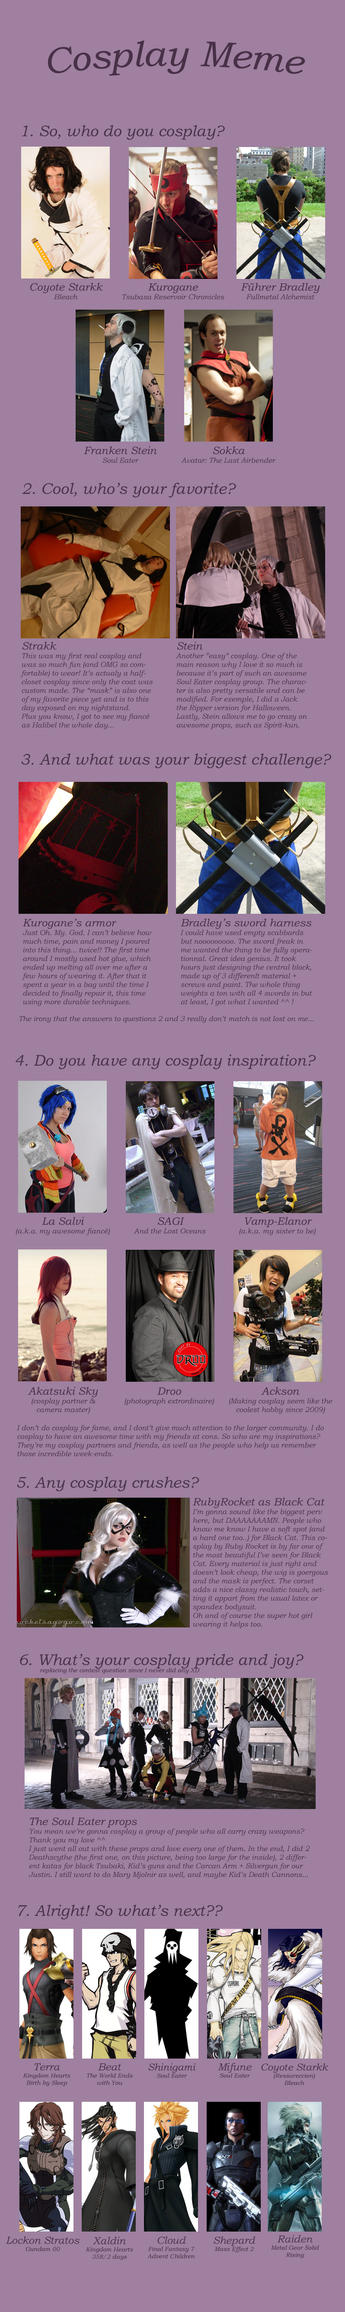 Flare8521 Cosplay Meme by flare8521